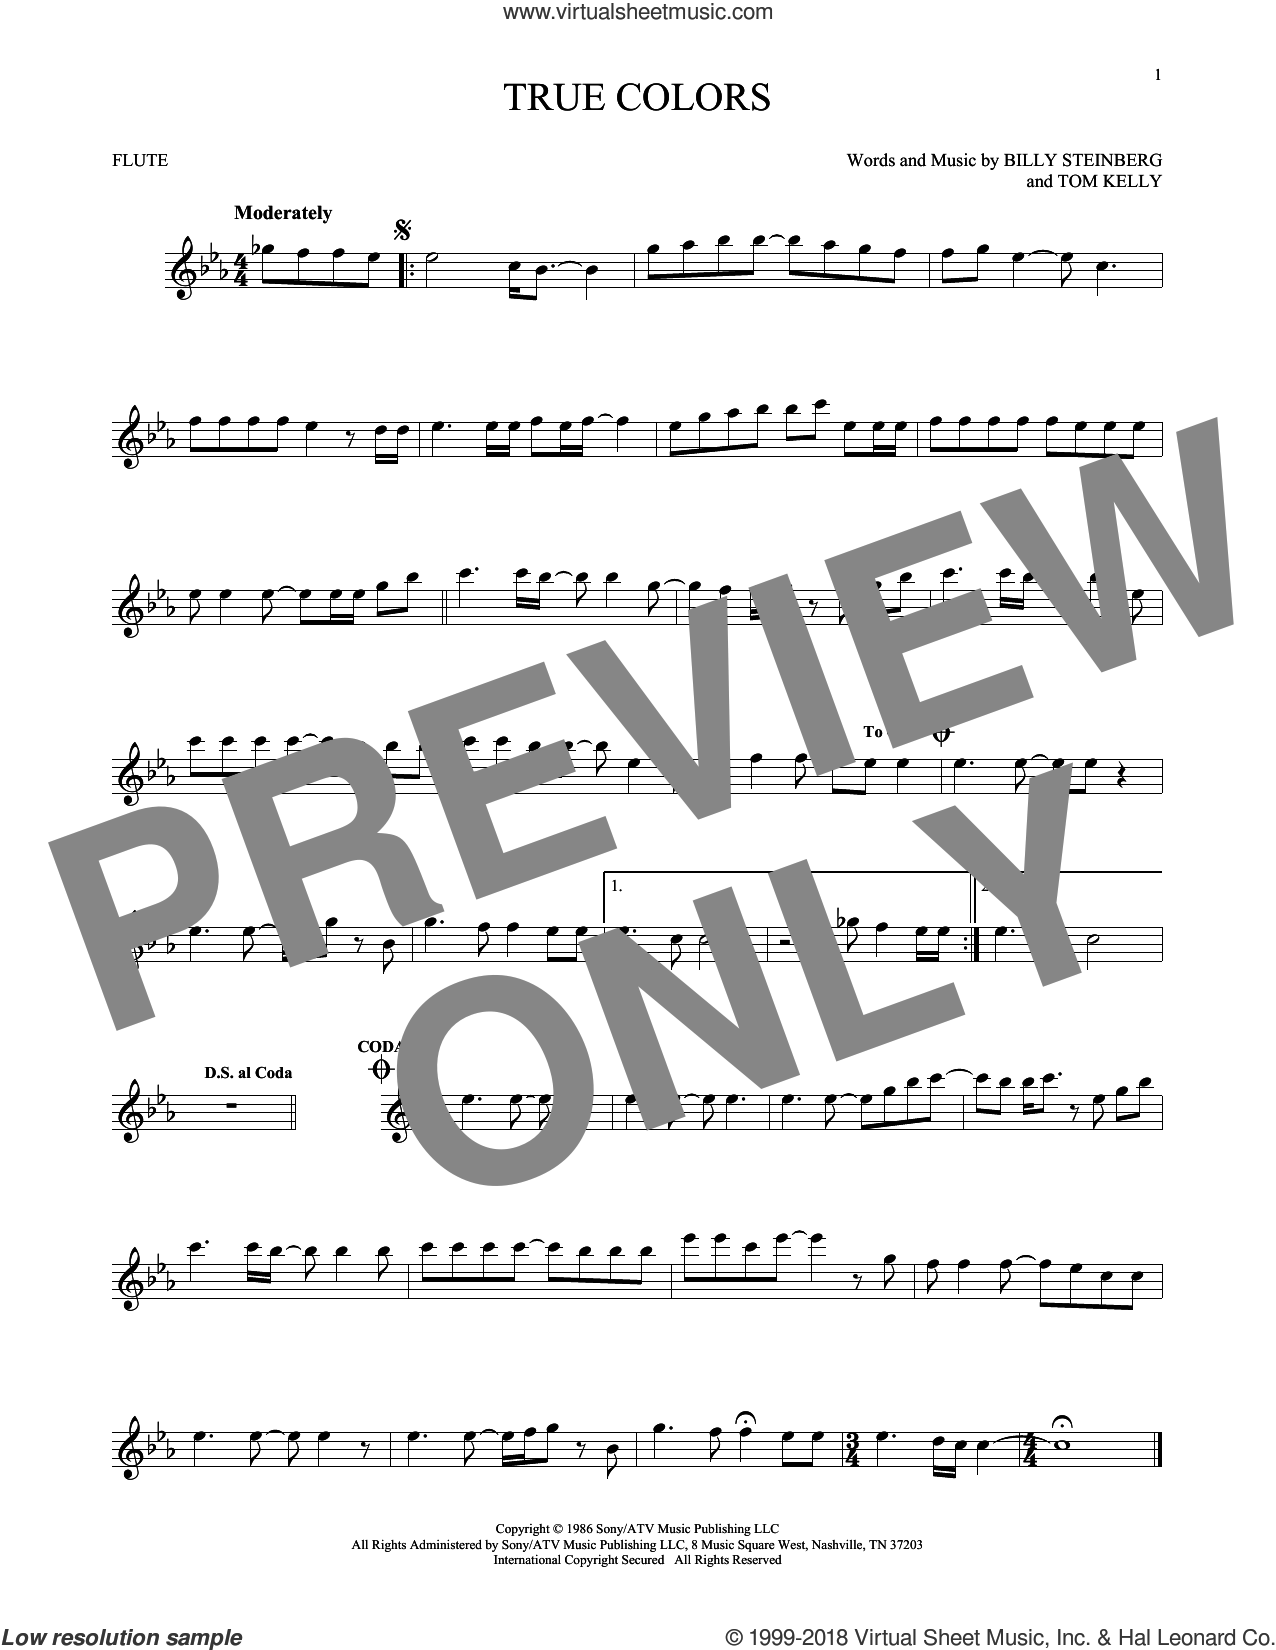 True Colors sheet music for flute solo by Cyndi Lauper, Billy Steinberg and Tom Kelly, intermediate skill level